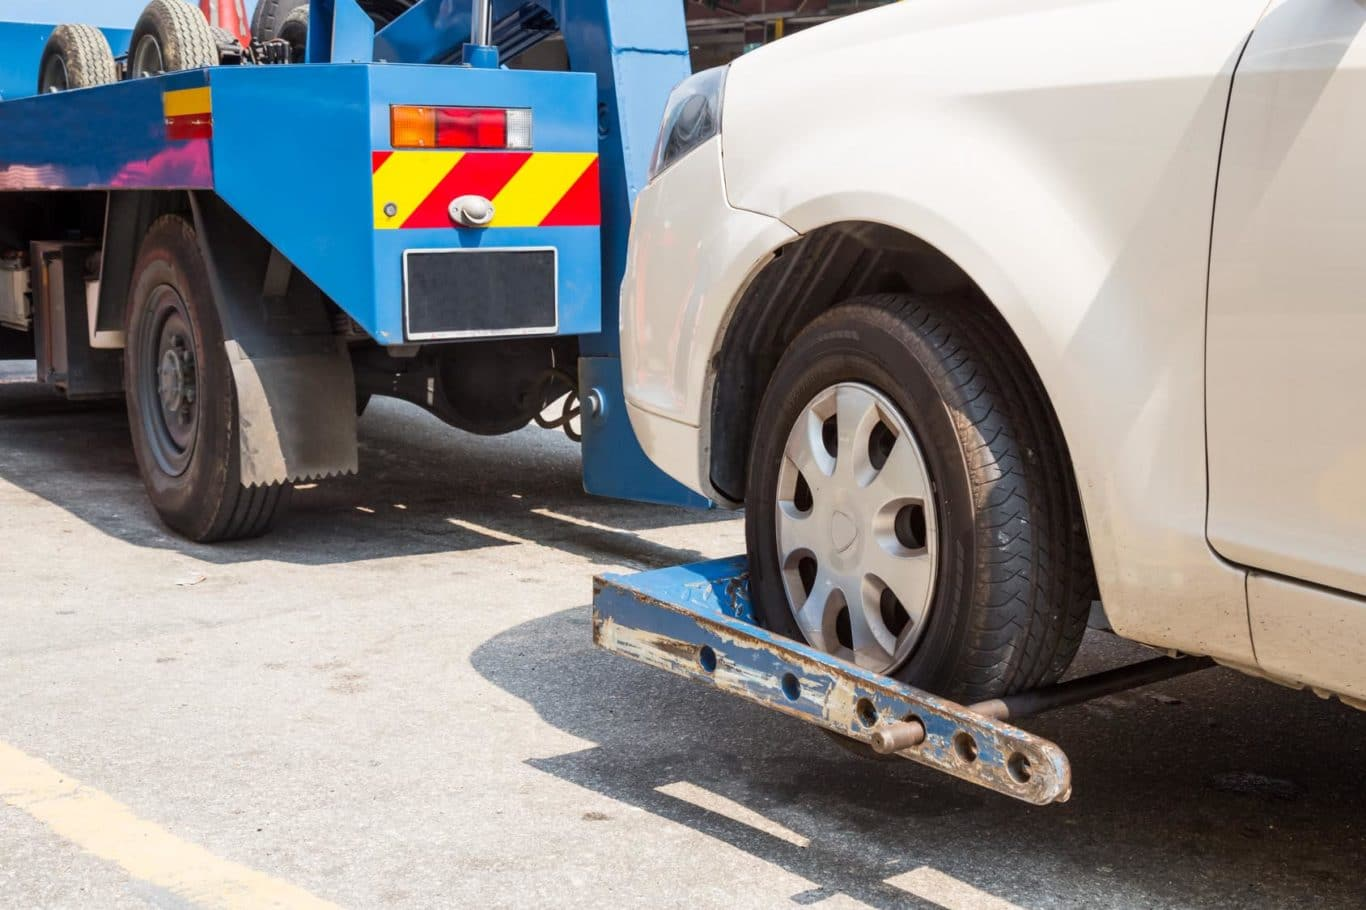 Foxrock expert Car Towing services